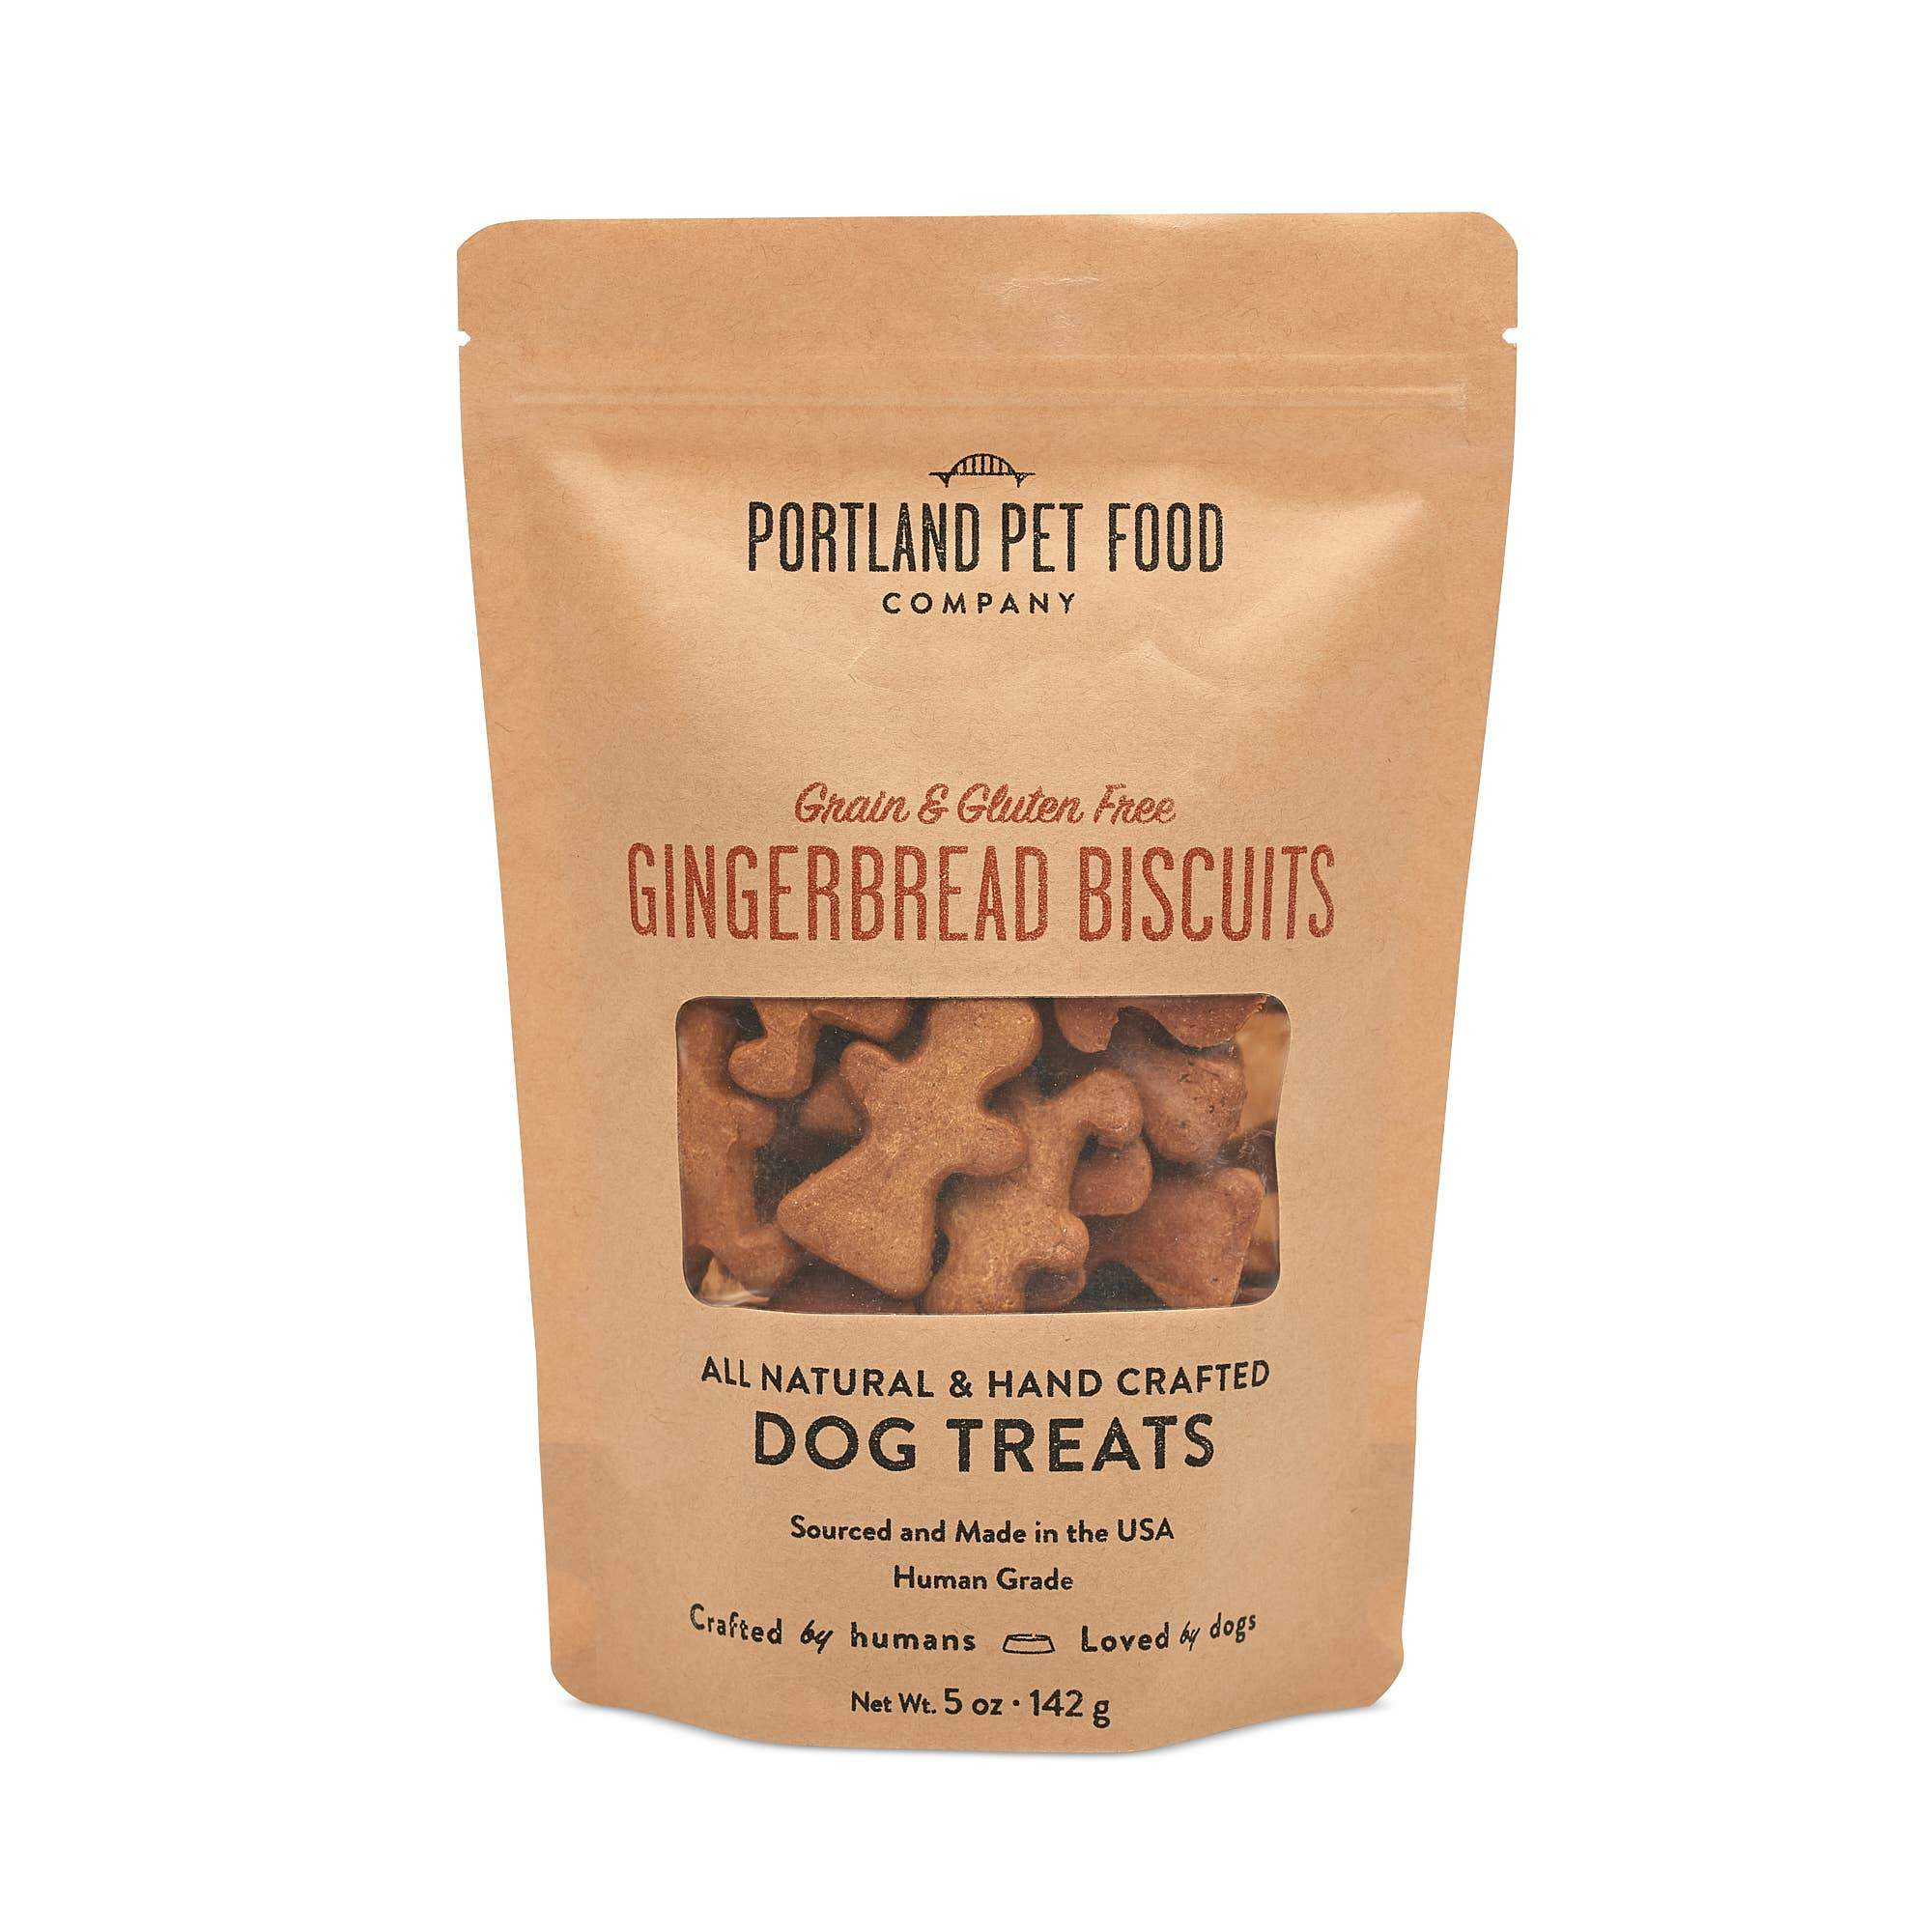 Grain and Gluten Free Gingerbread Dog Biscuits